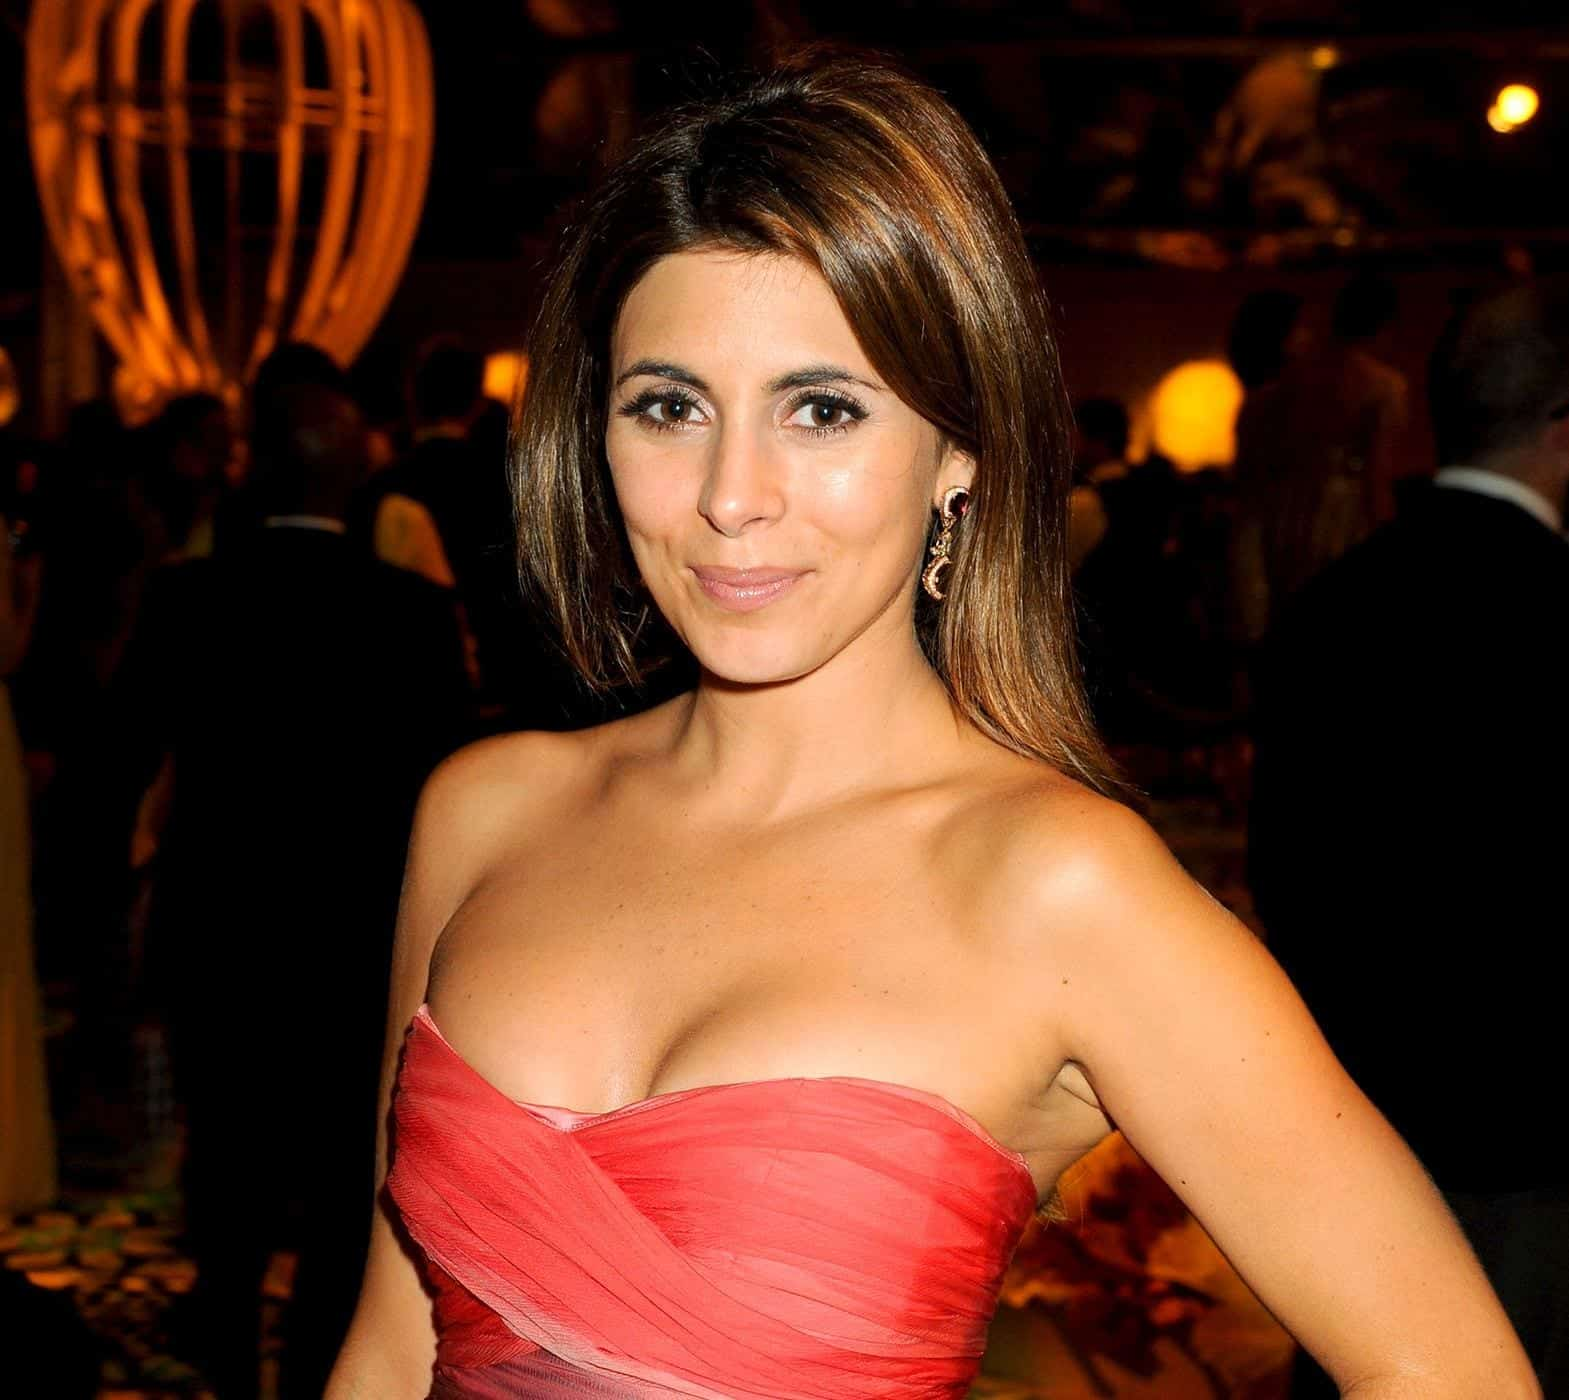 Jamie-Lynn-Sigler Cute Jewish Girls - 30 Most Pretty Jewish Women in the World